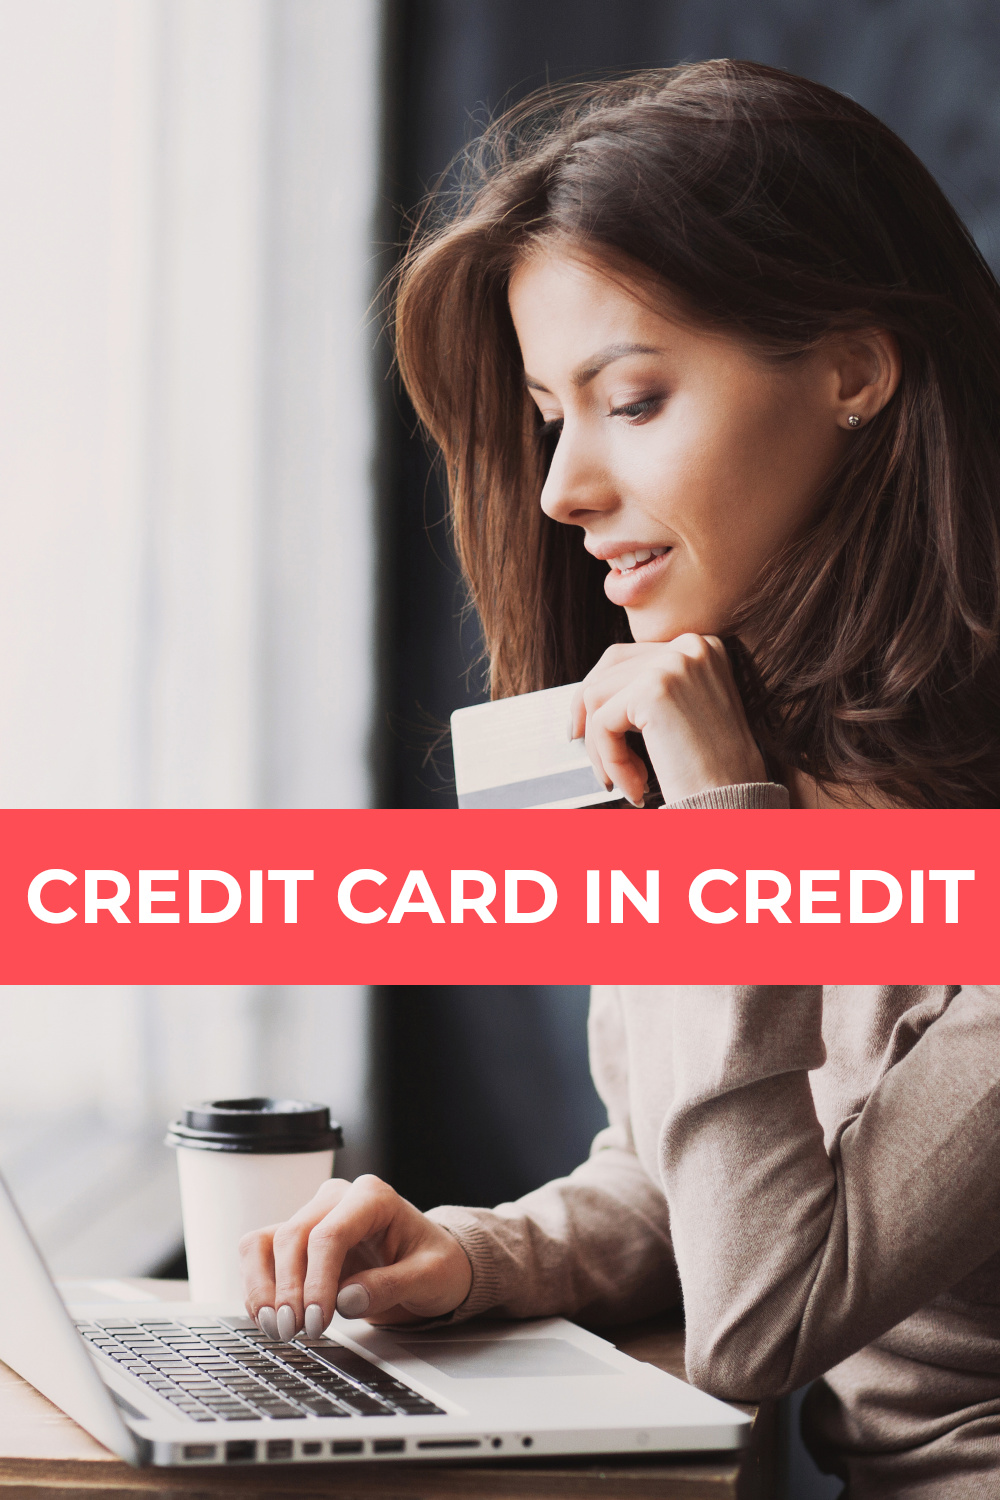 Credit card in credit - what you need to know